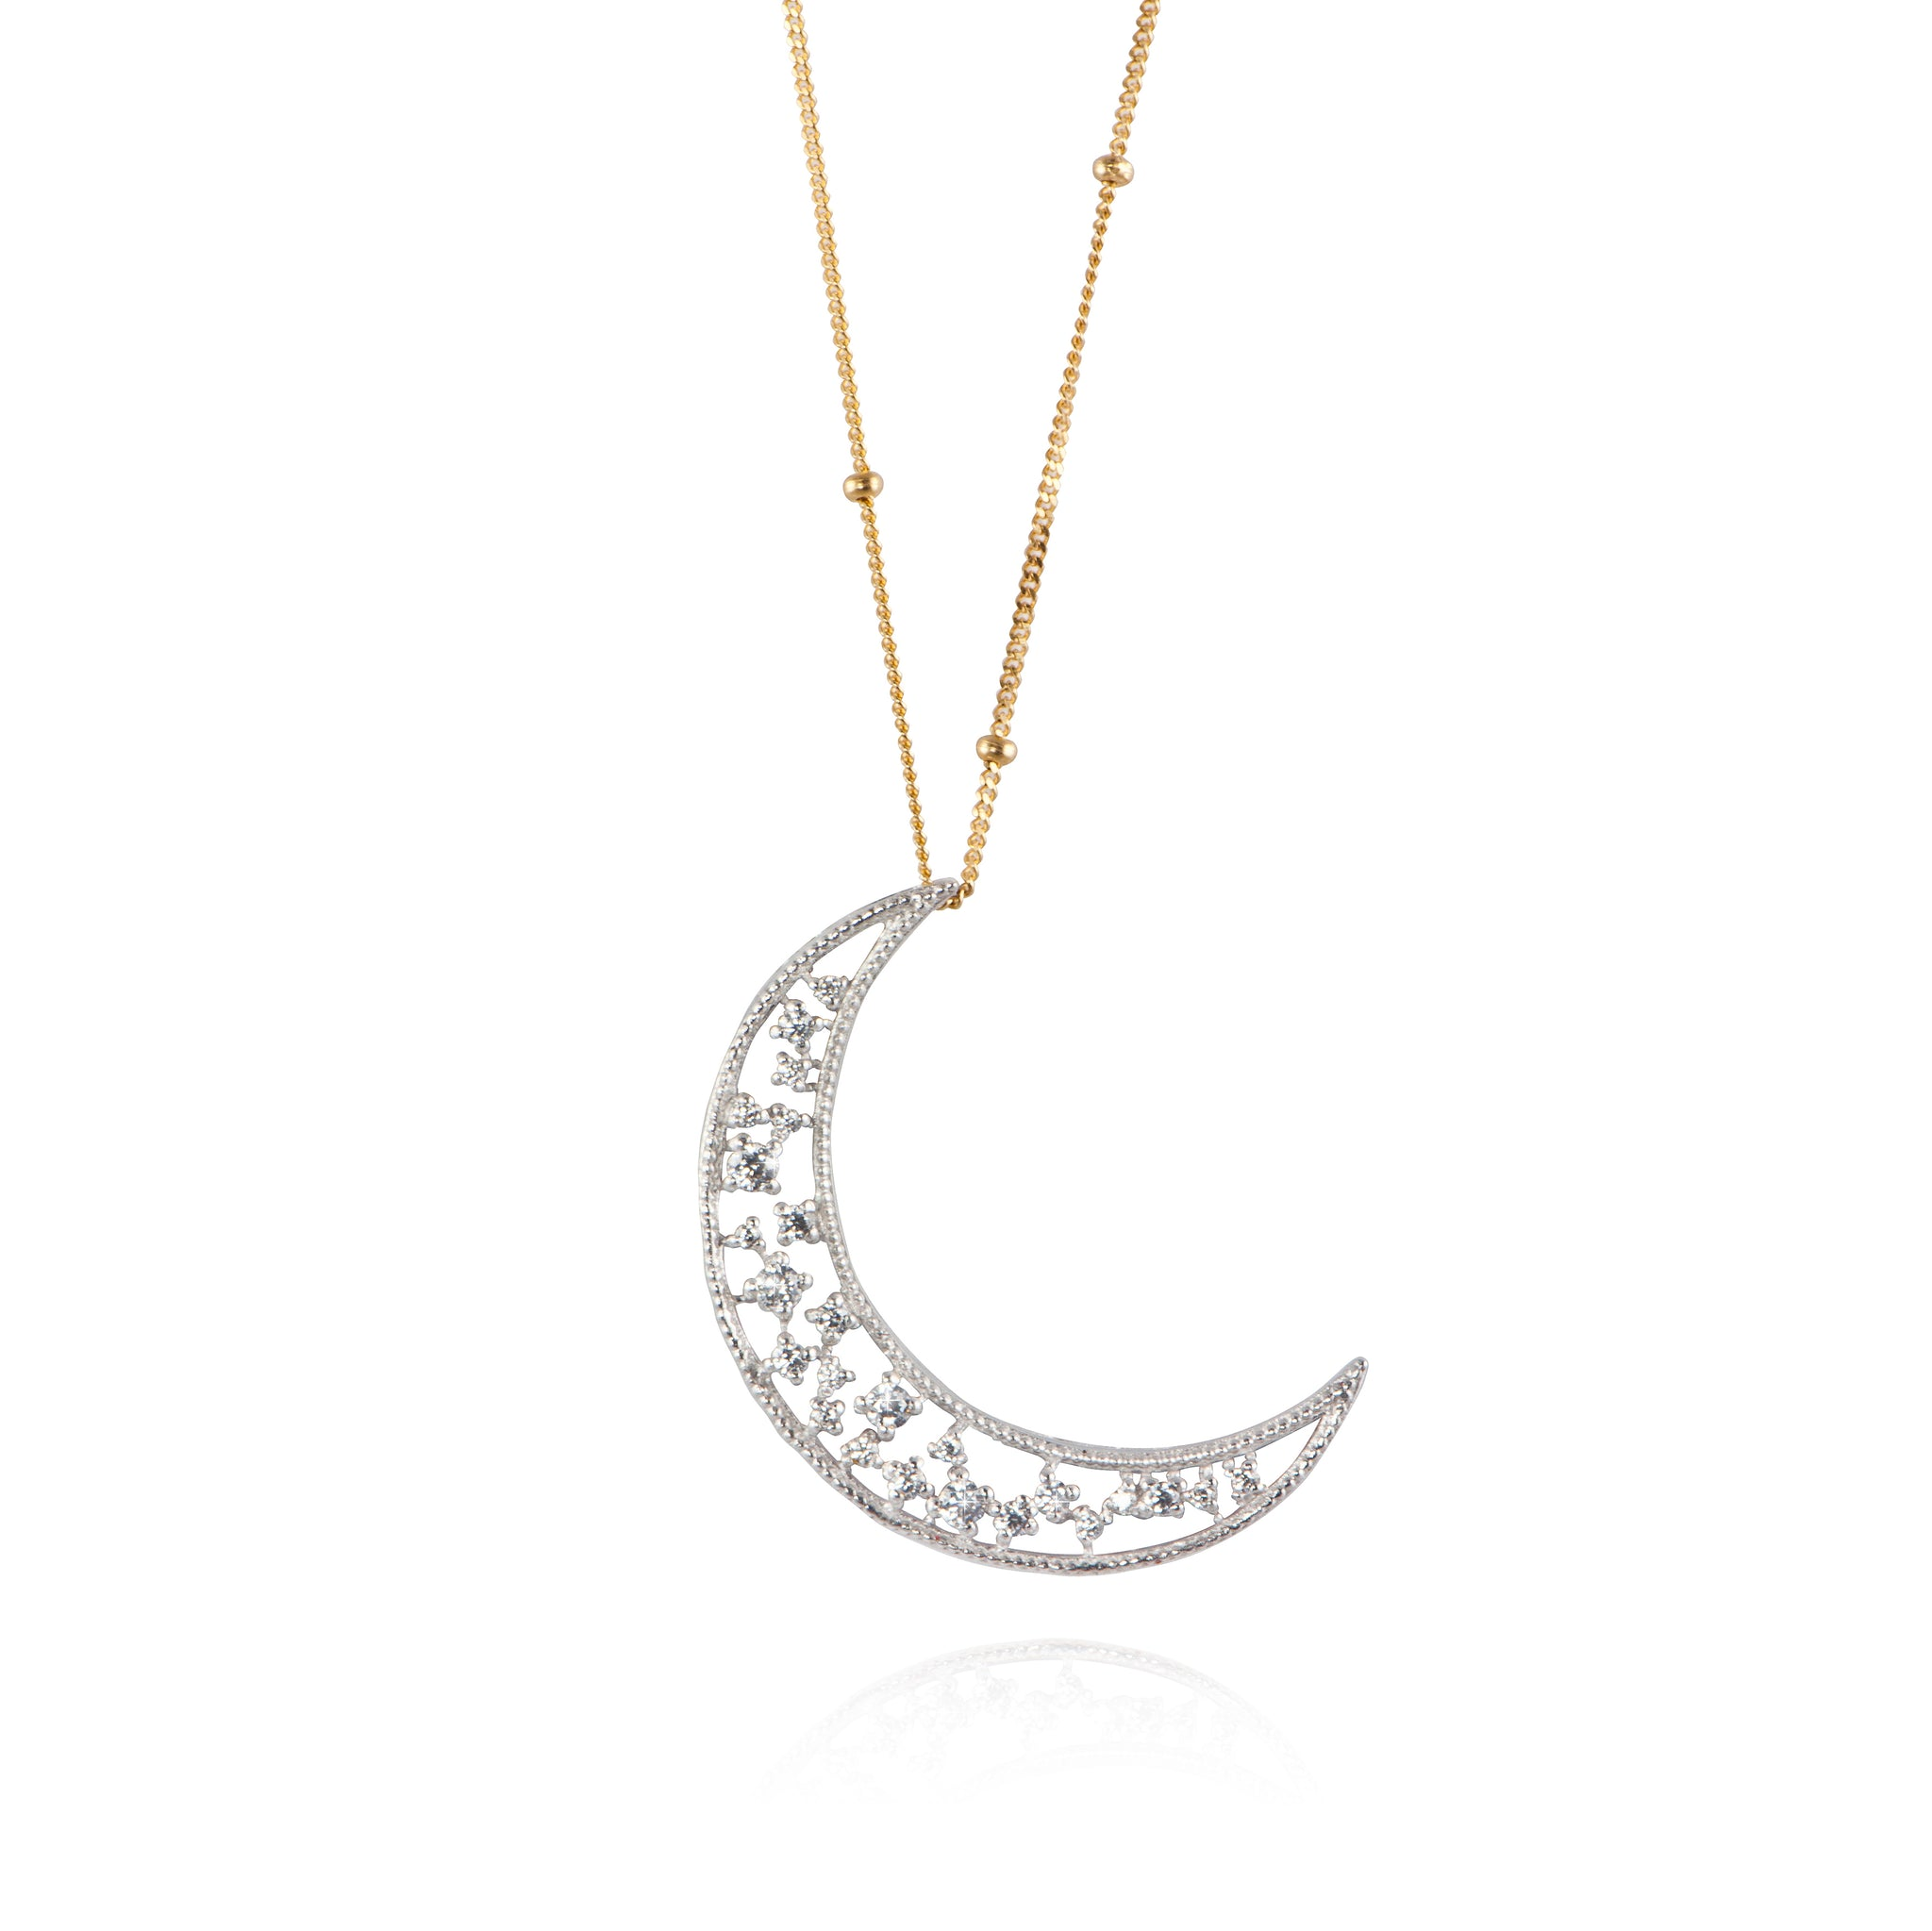 APPLES & FIGS X CRESCENT PENDANT